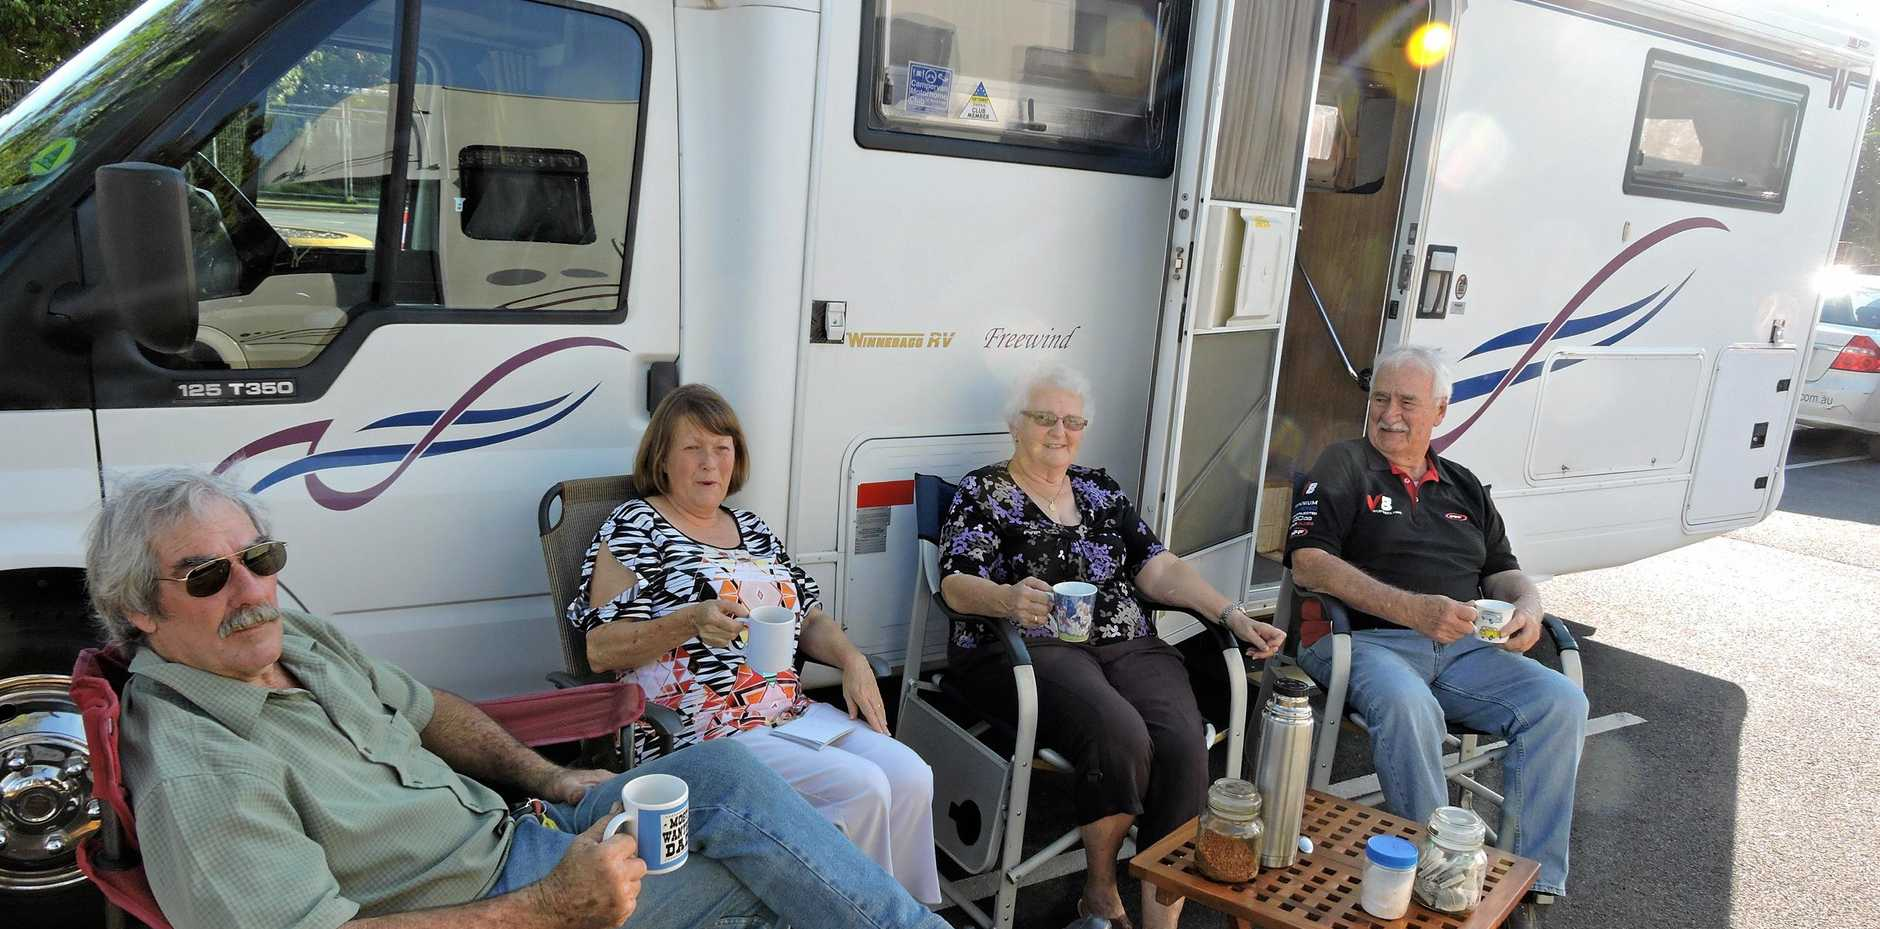 TOURISM: Experienced RV Motorhome campers Alan and Nan Ott and Brenda and Terry Zillmann were among those who fought for Maryborough to become RV Friendly.